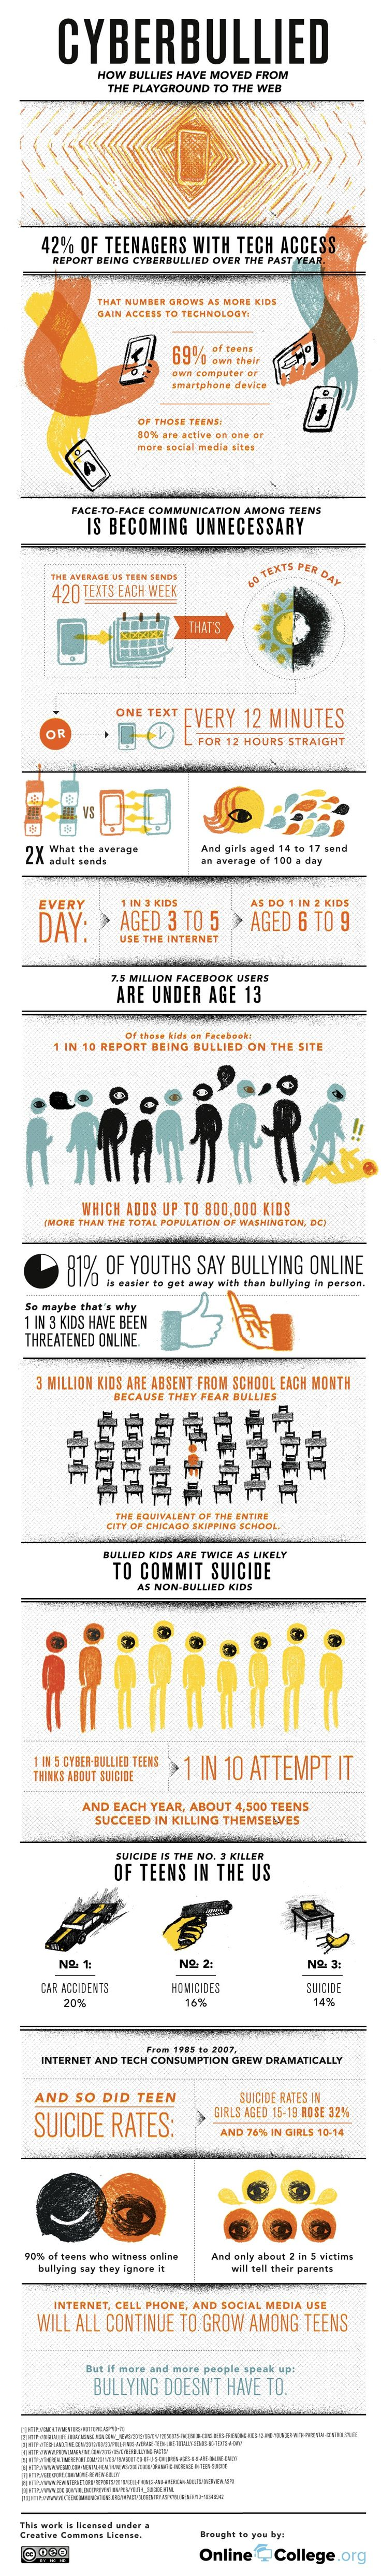 Cyberbullying: Scourge of the